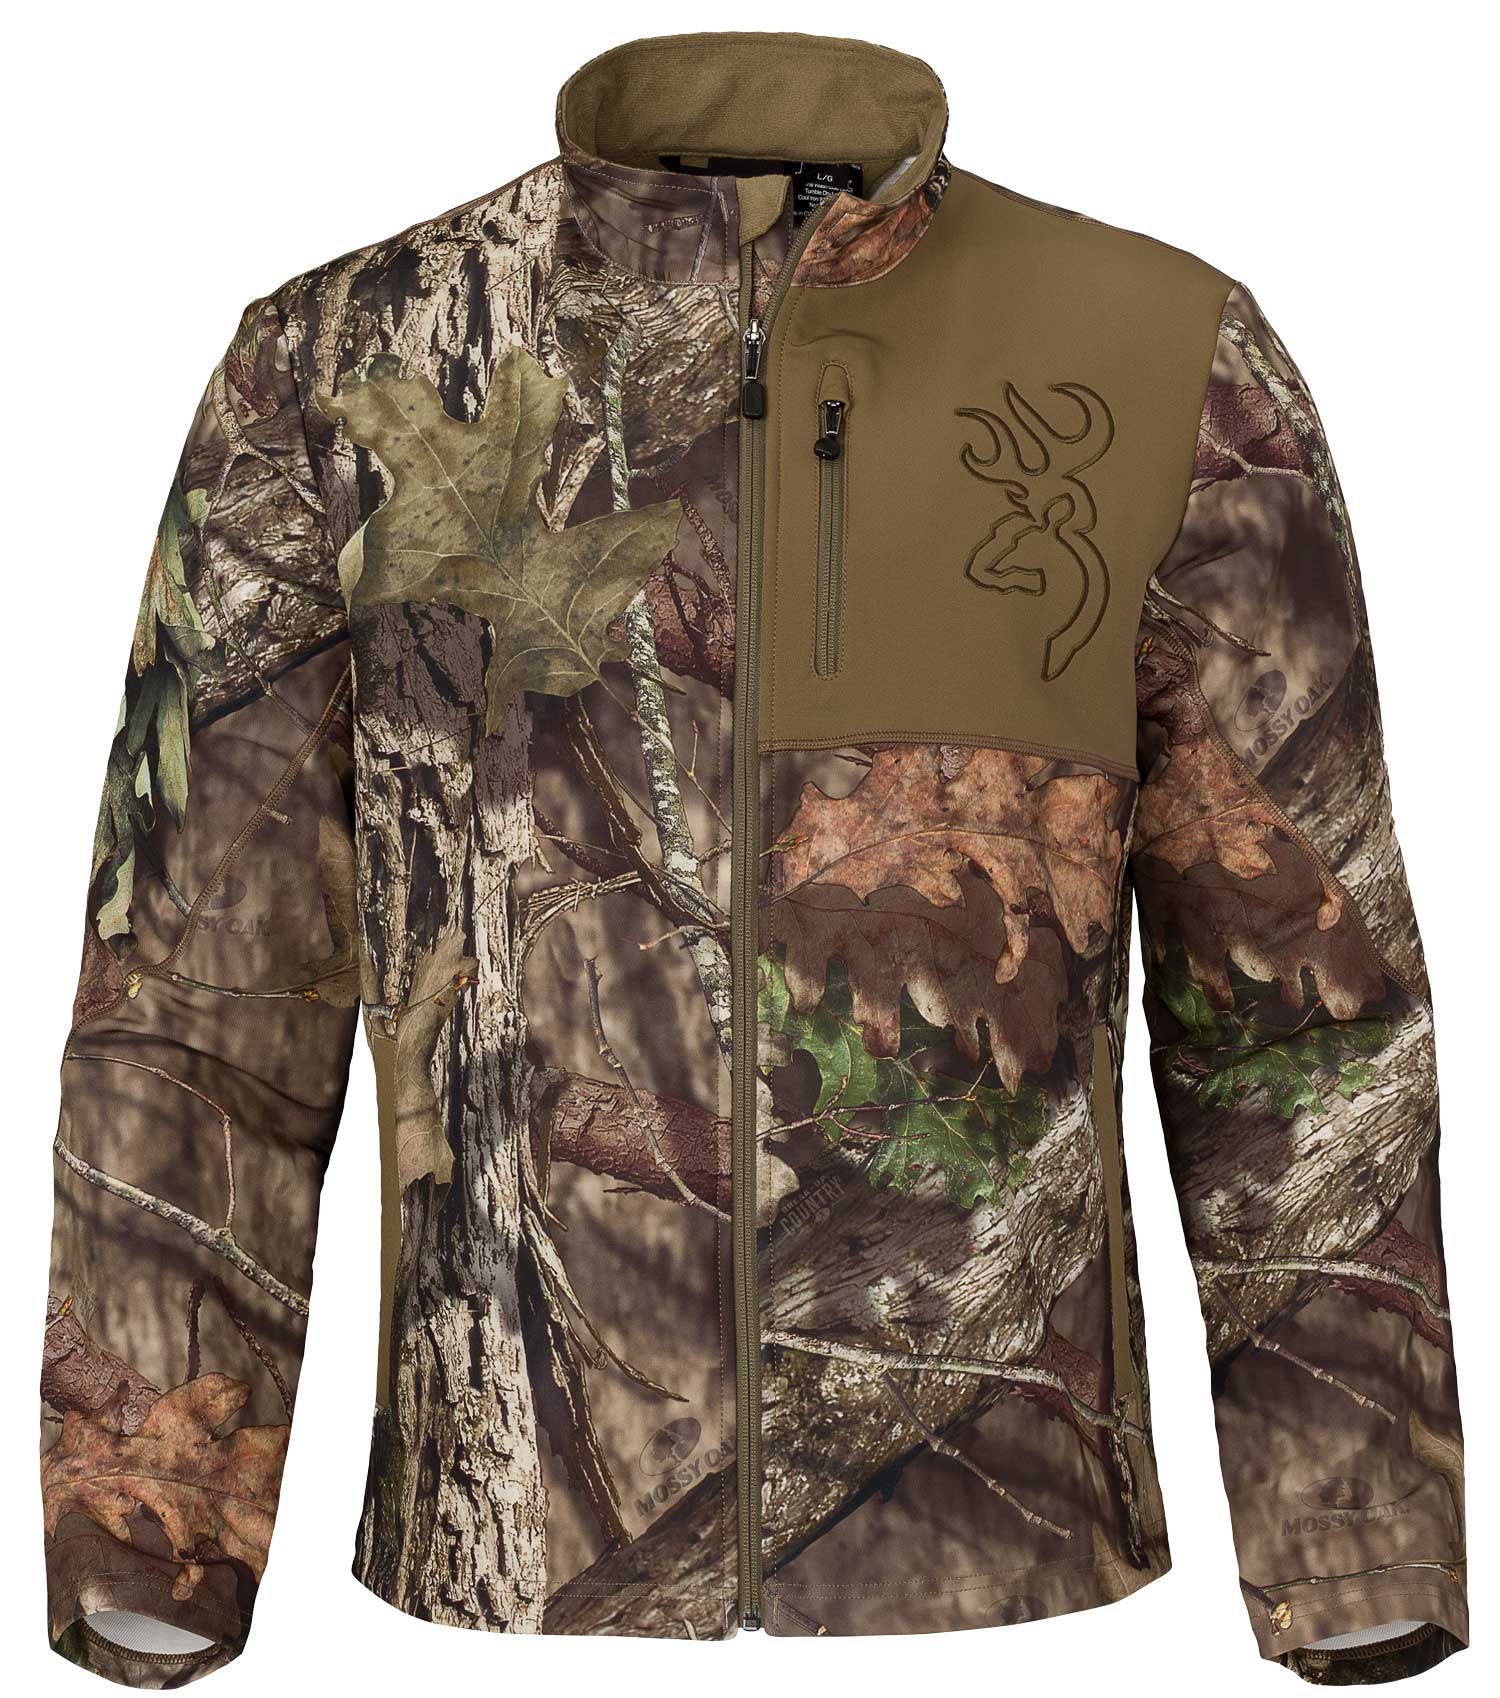 Browning Men's Hell's Canyon Mercury Hunting Jacket, Size: Medium, Mossy Oak Brk-Up Country thumbnail